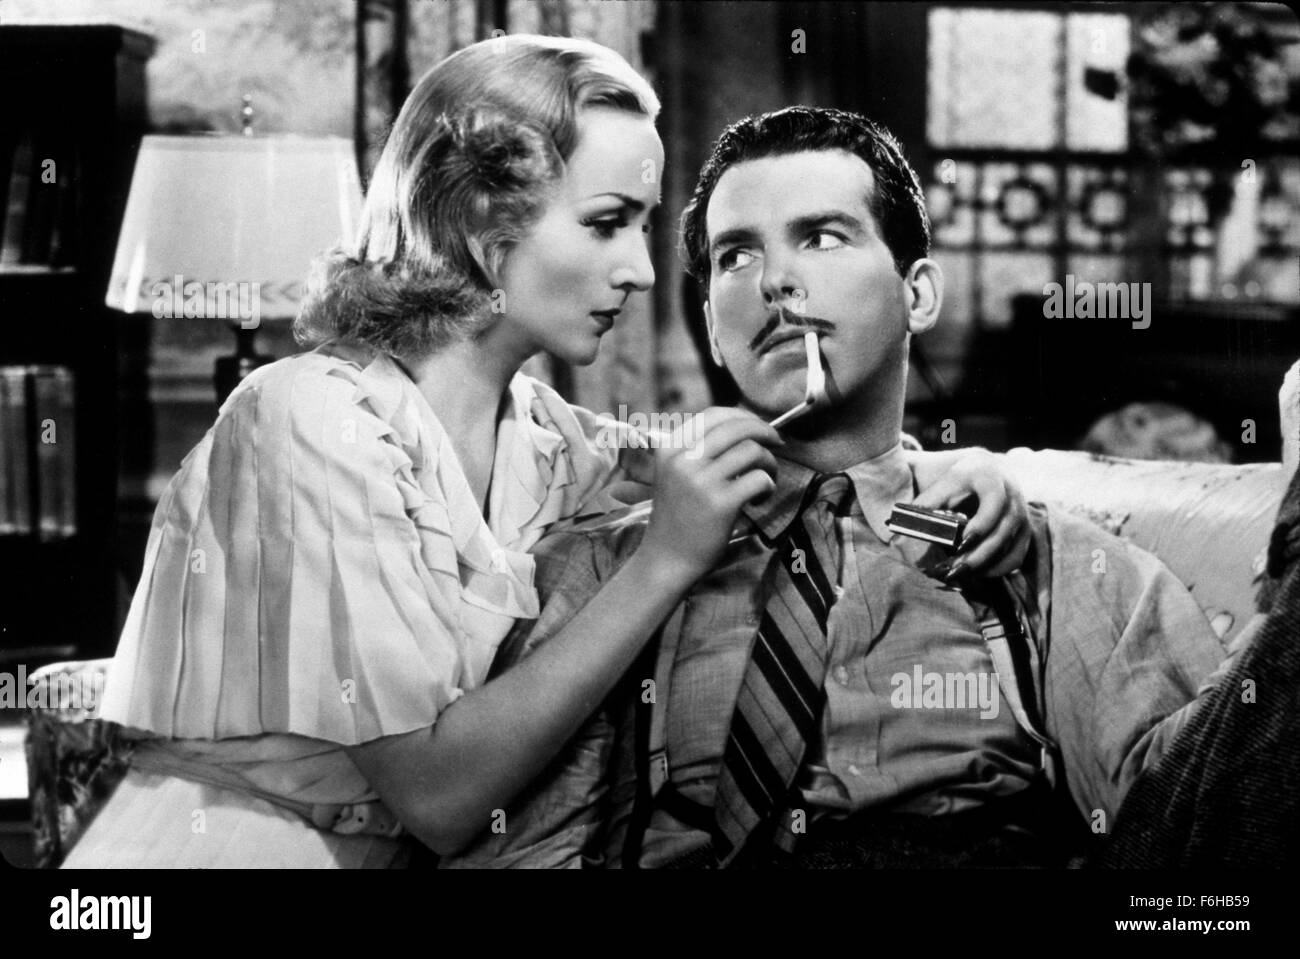 ... Studio PARAMOUNT Pictured ACCESSORIES CIGARETTE CAROLE LOMBARD FRED MacMURRAY SMOKERS INTIMATE SEDUCTIVE MAKING ADVANCES FLIRTING LIGHTING ...  sc 1 st  Alamy & 1937 Film Title: TRUE CONFESSION Director: WESLEY RUGGLES Studio ...